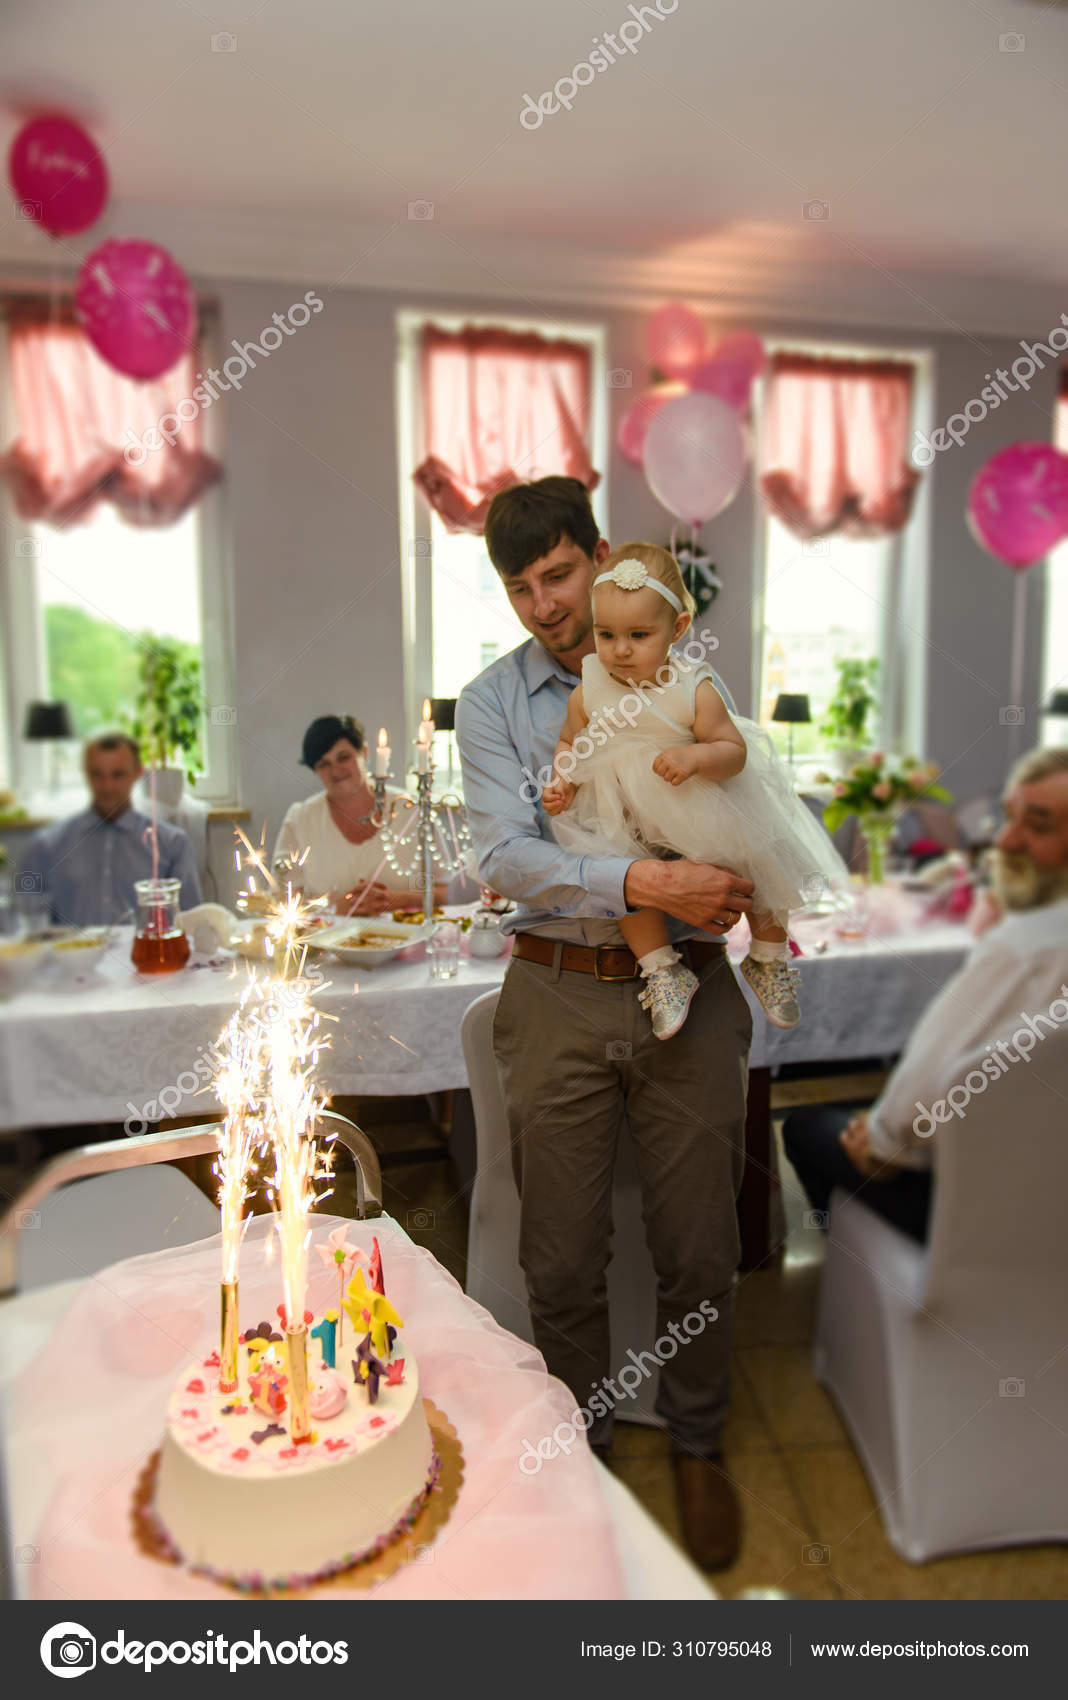 Marvelous Baby Girl 1 Year Old Eating Birthday Cake In Room Birthday Party Personalised Birthday Cards Paralily Jamesorg